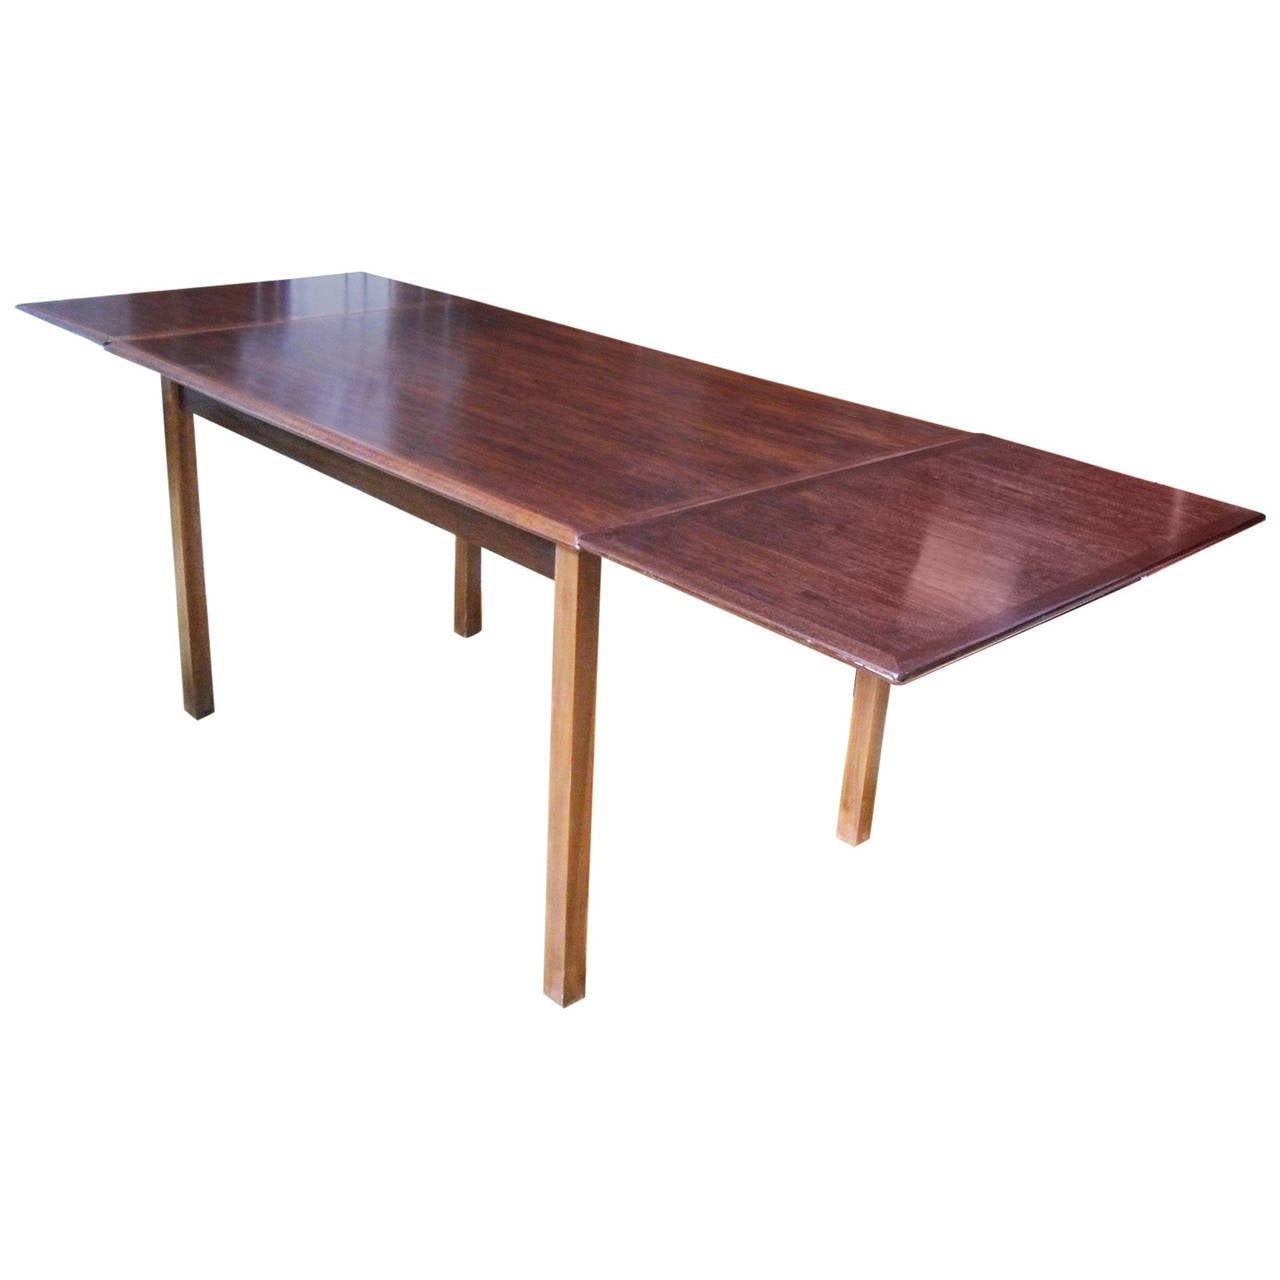 Mid century modern rosewood extendable dining table at 1stdibs for Modern dining room table